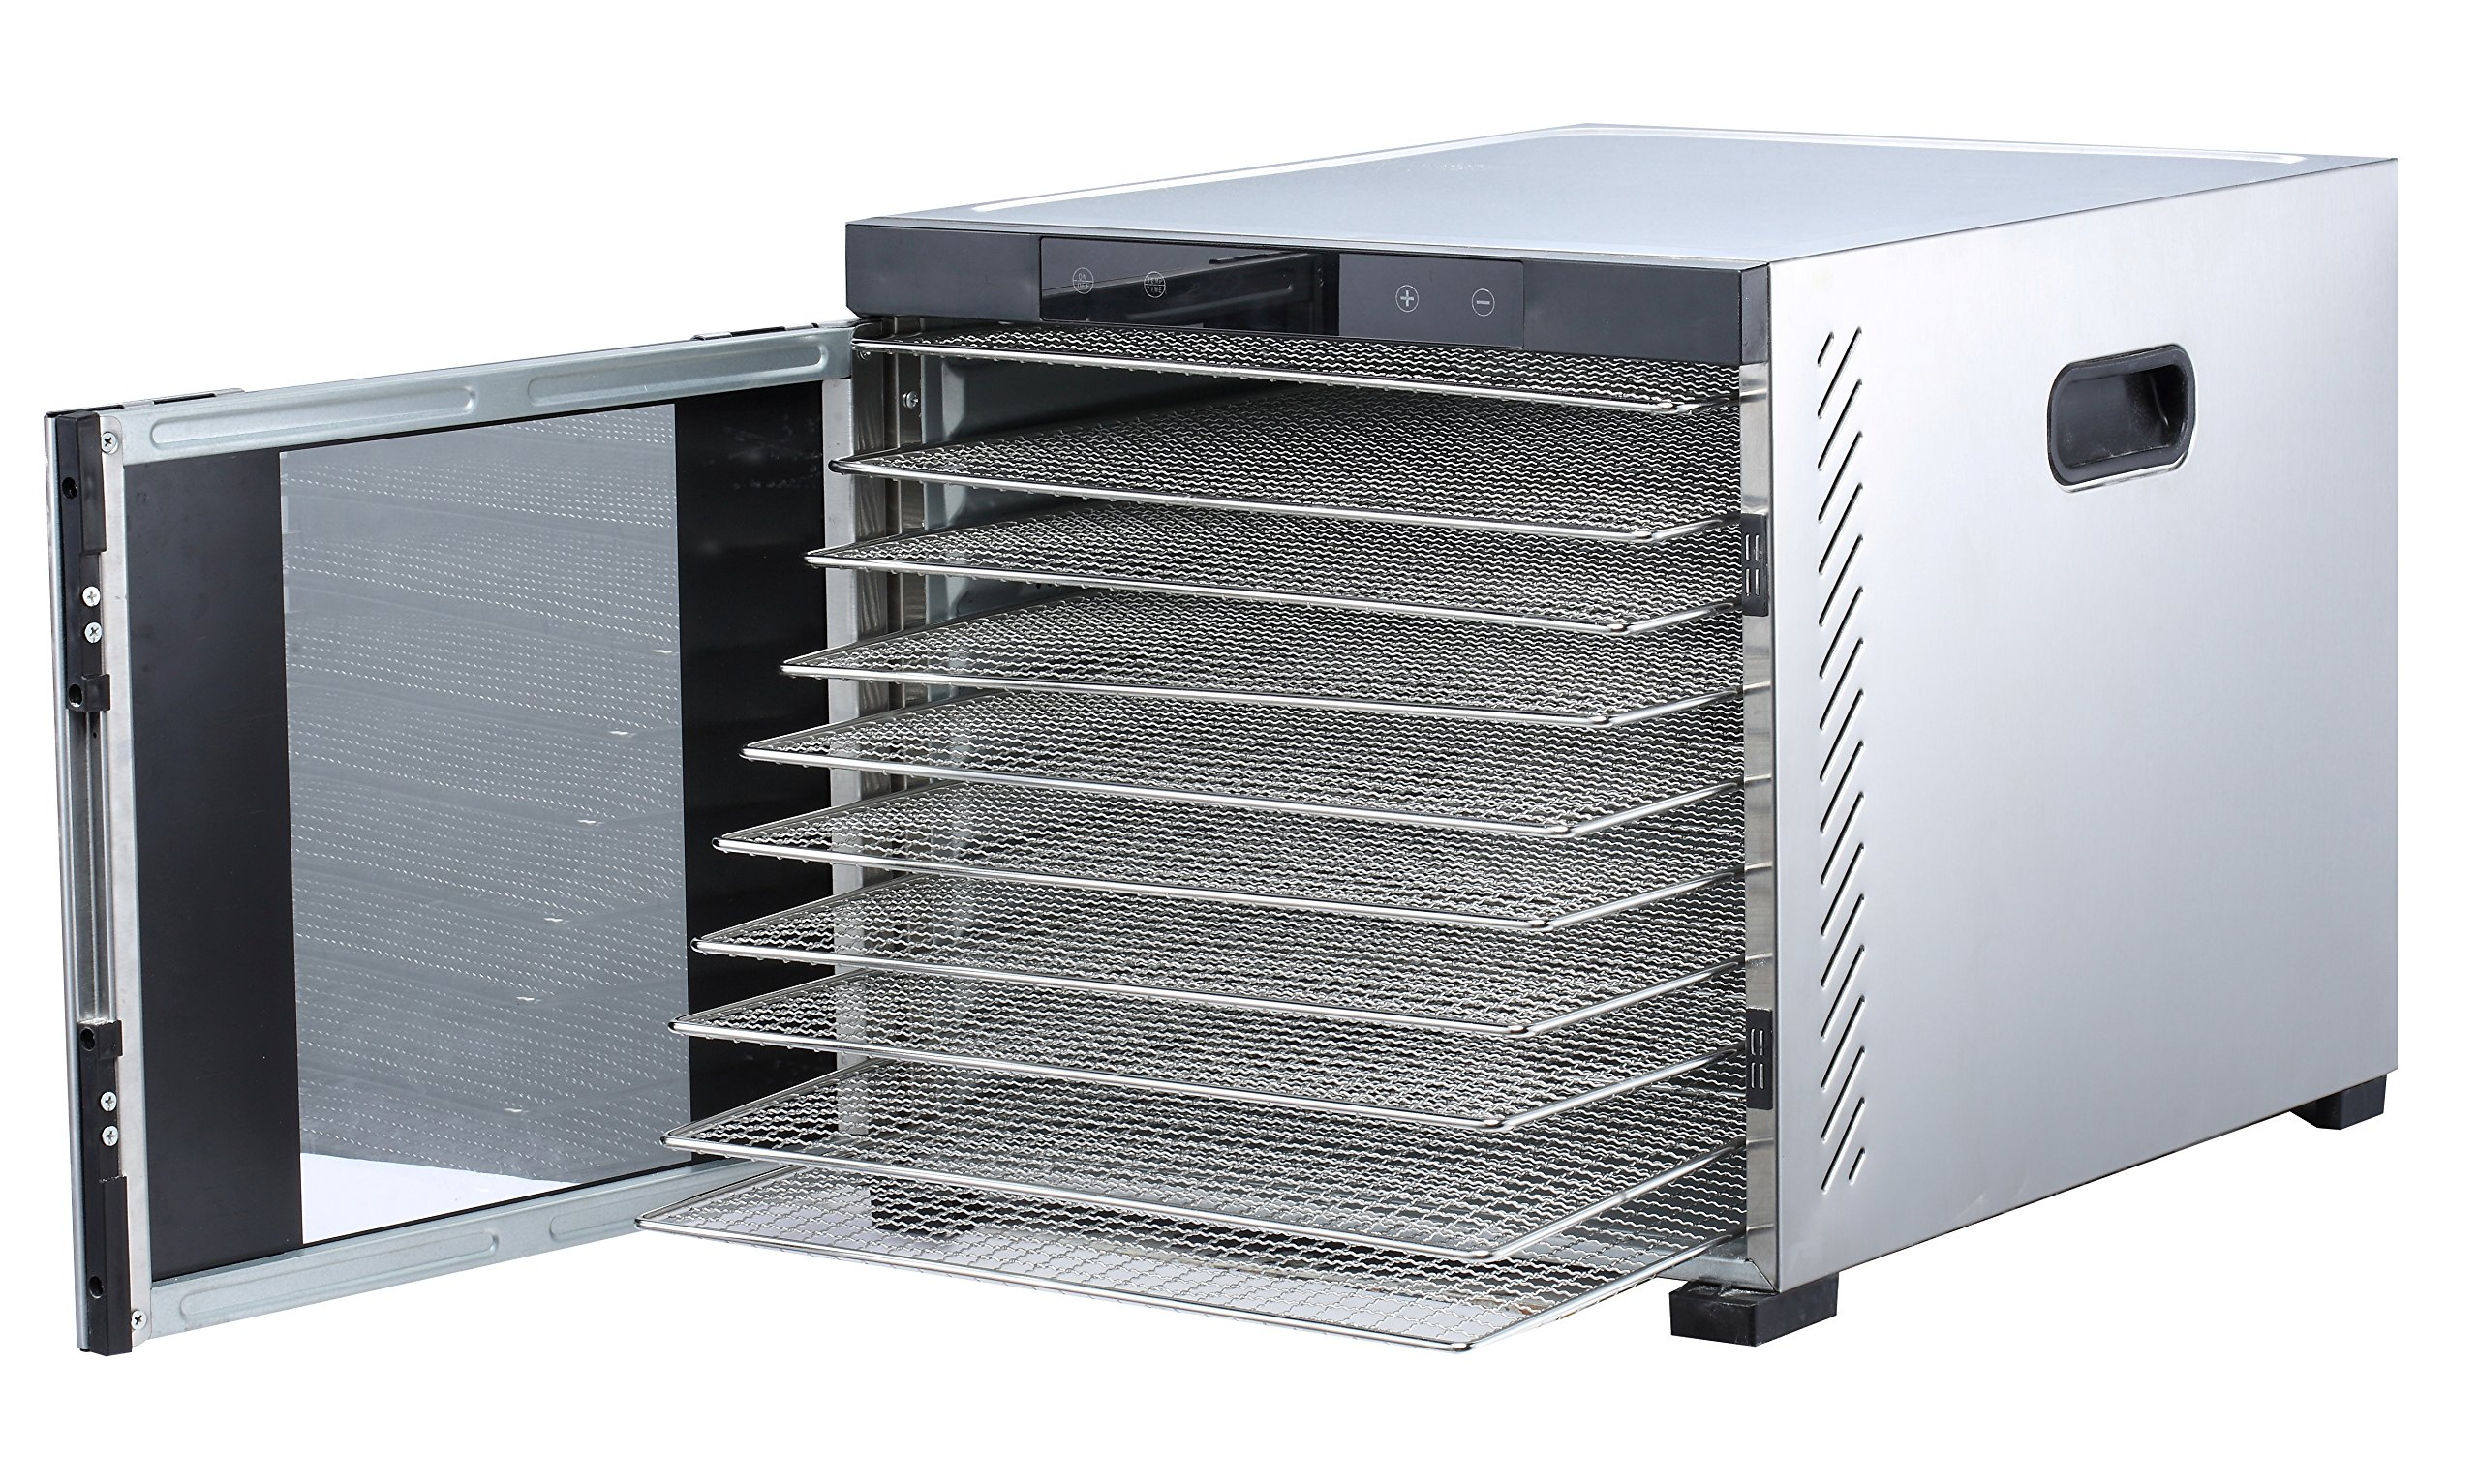 Samson''Silent'' 10 Tray Stainless Steel Dehydrator - Digital Controls - Glass Door PLUS 5 Silicone Sheets